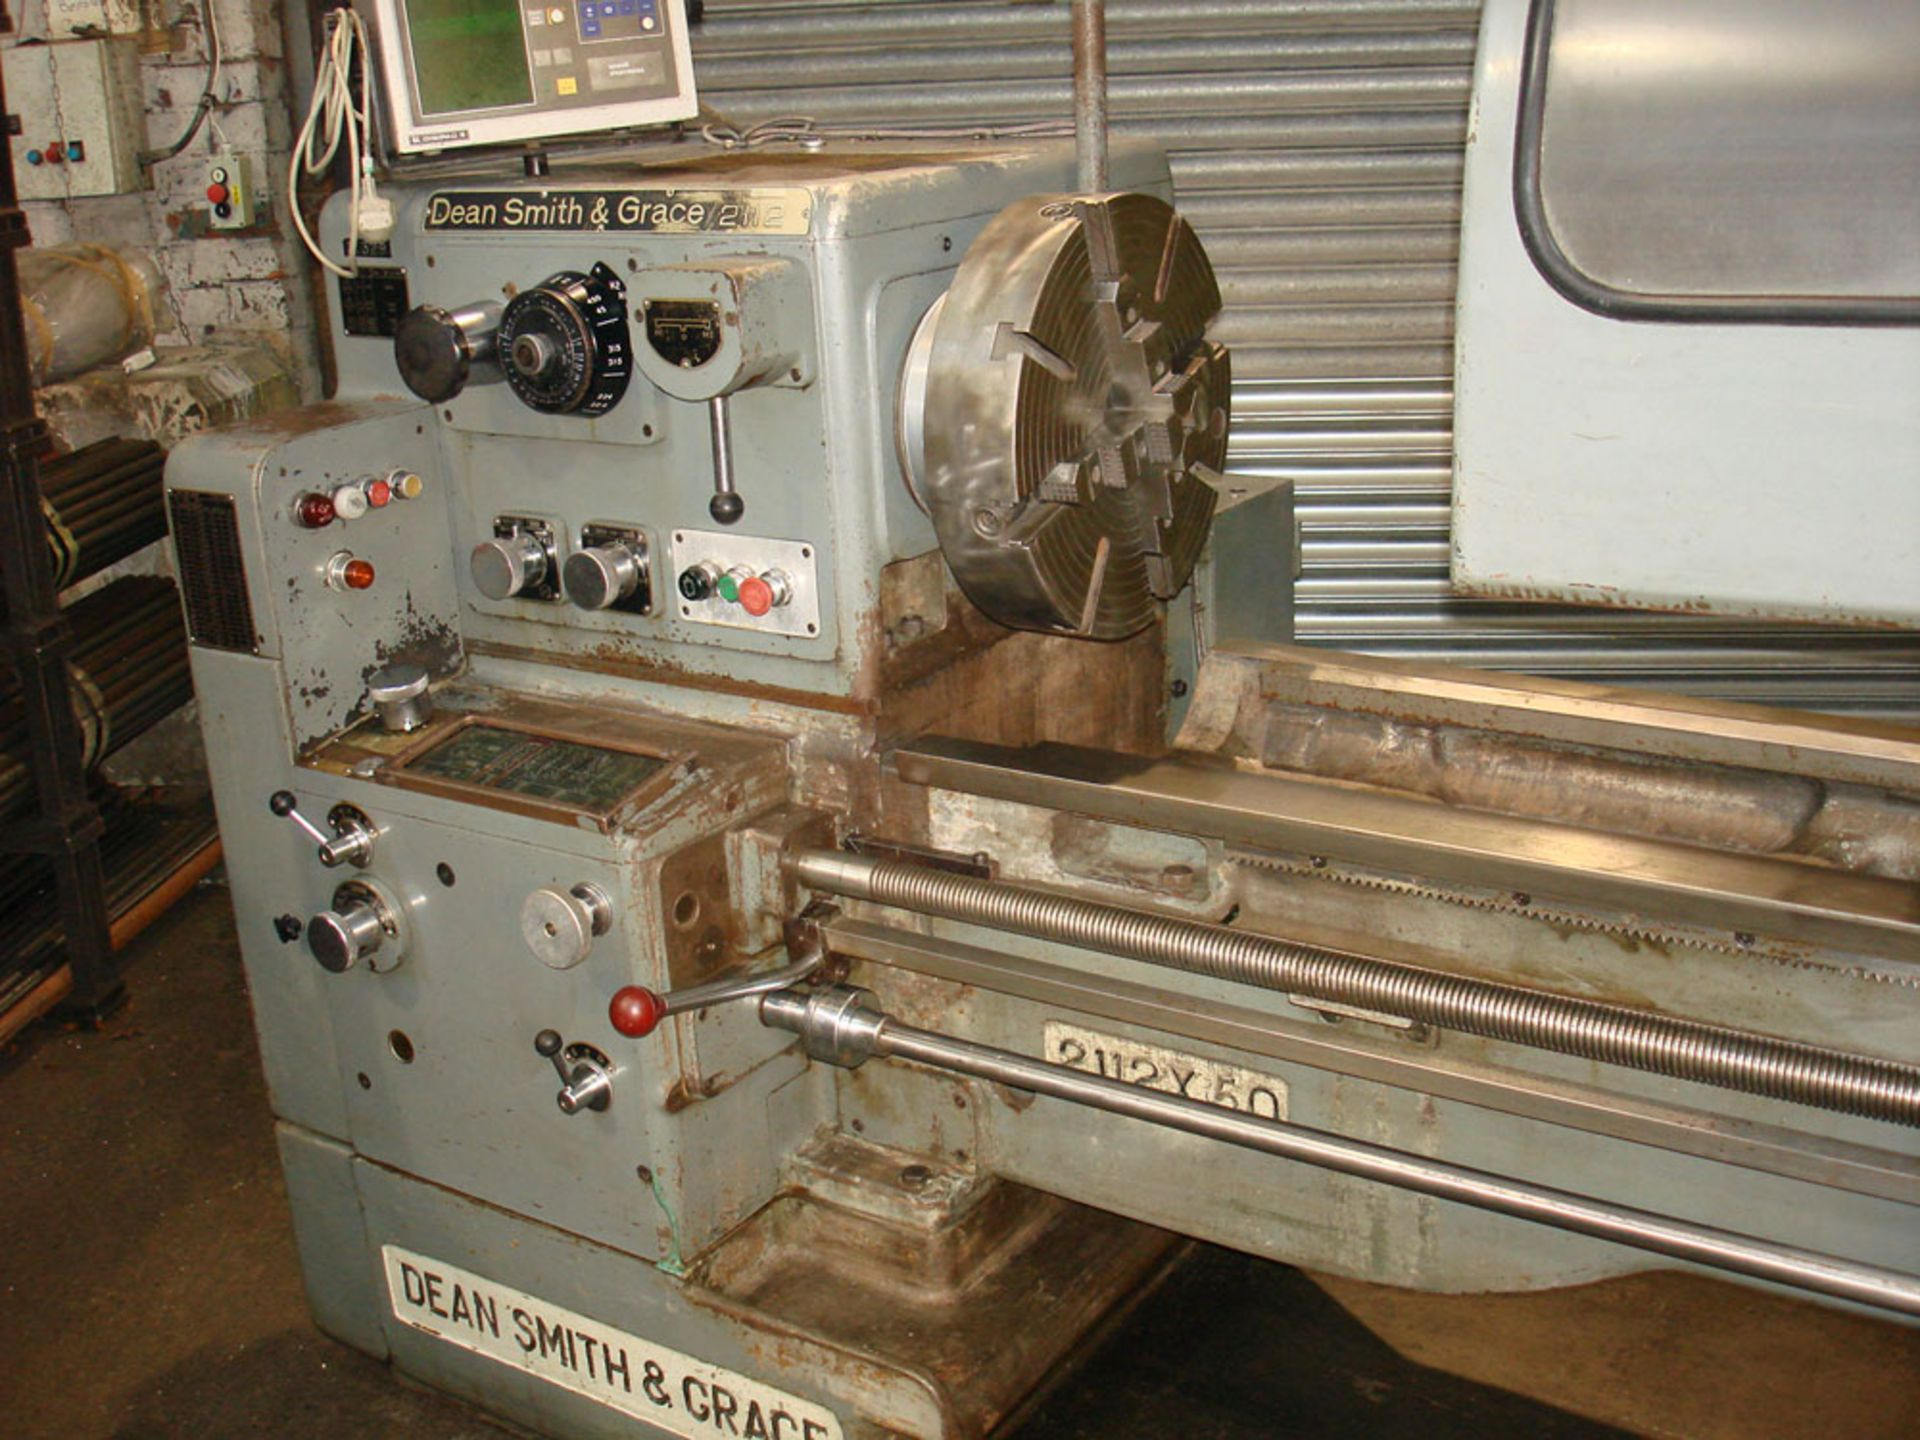 """Dean Smith & Grace 2112 x 50 Gap Bed Centre Lathe. Swing Over Bed 21"""". Distance Between Centres 50"""". - Image 7 of 9"""